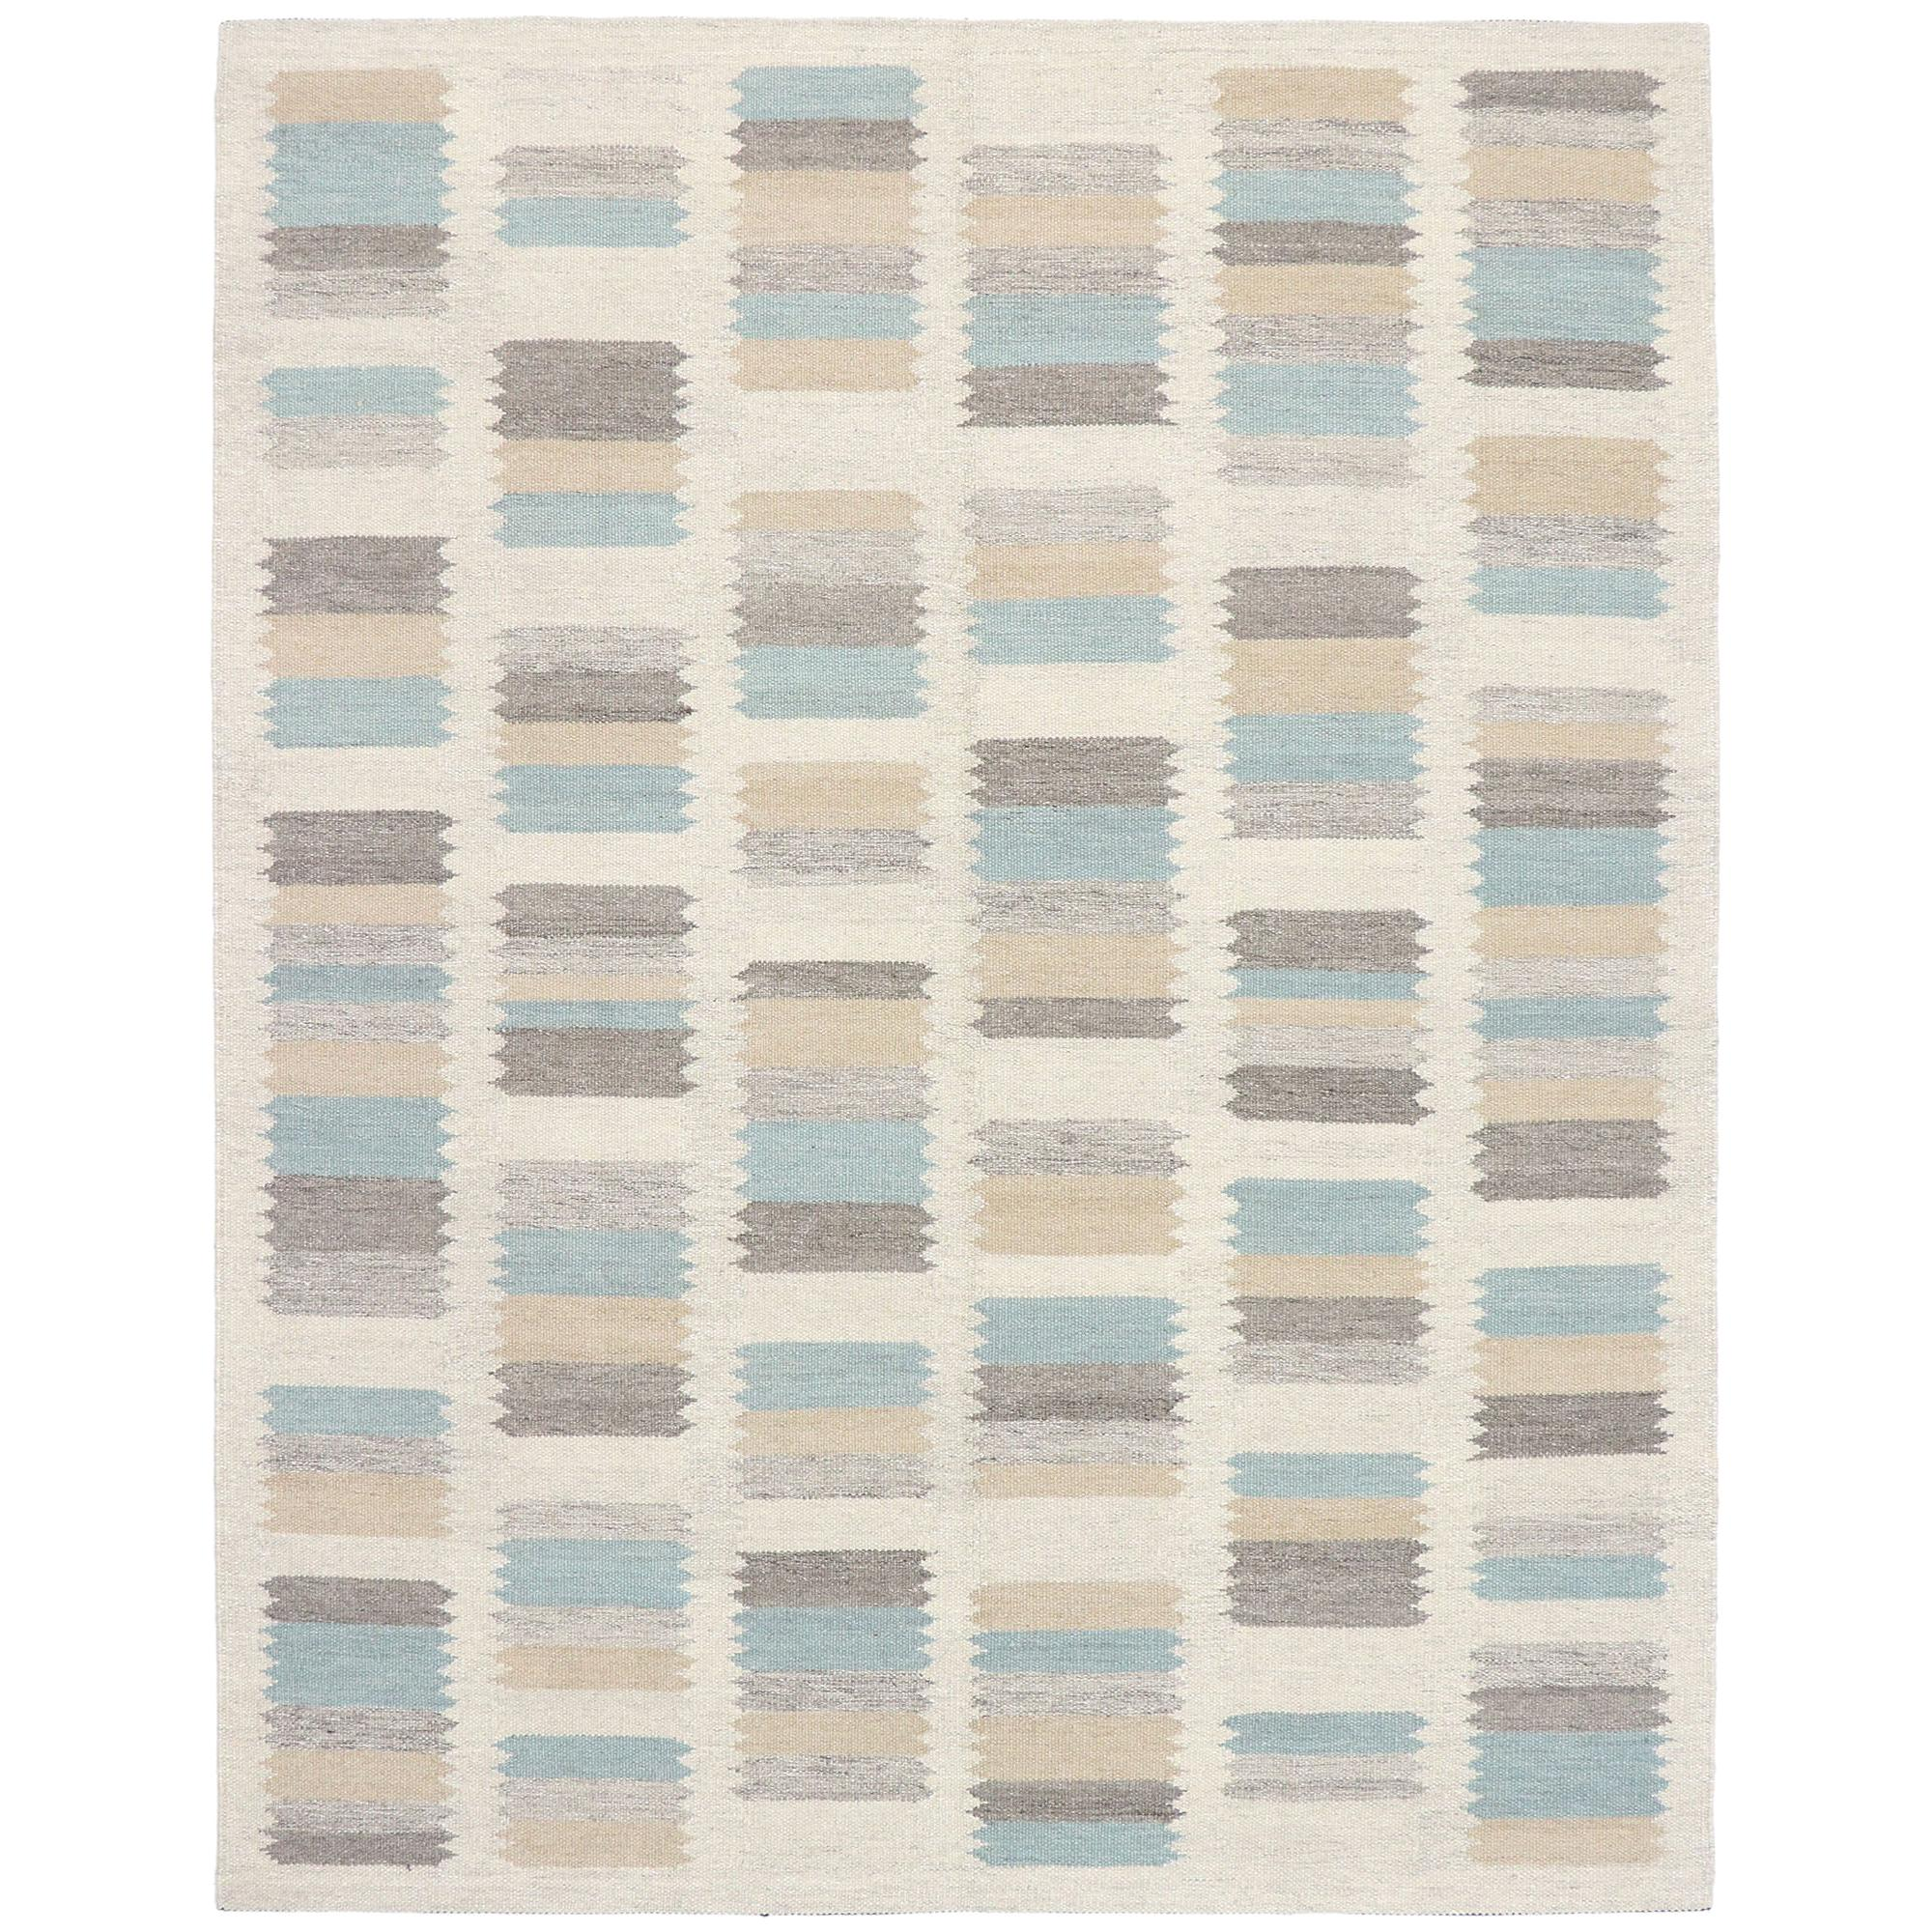 New Contemporary Indo-Swedish Kilim Rug with Scandinavian Modern Style